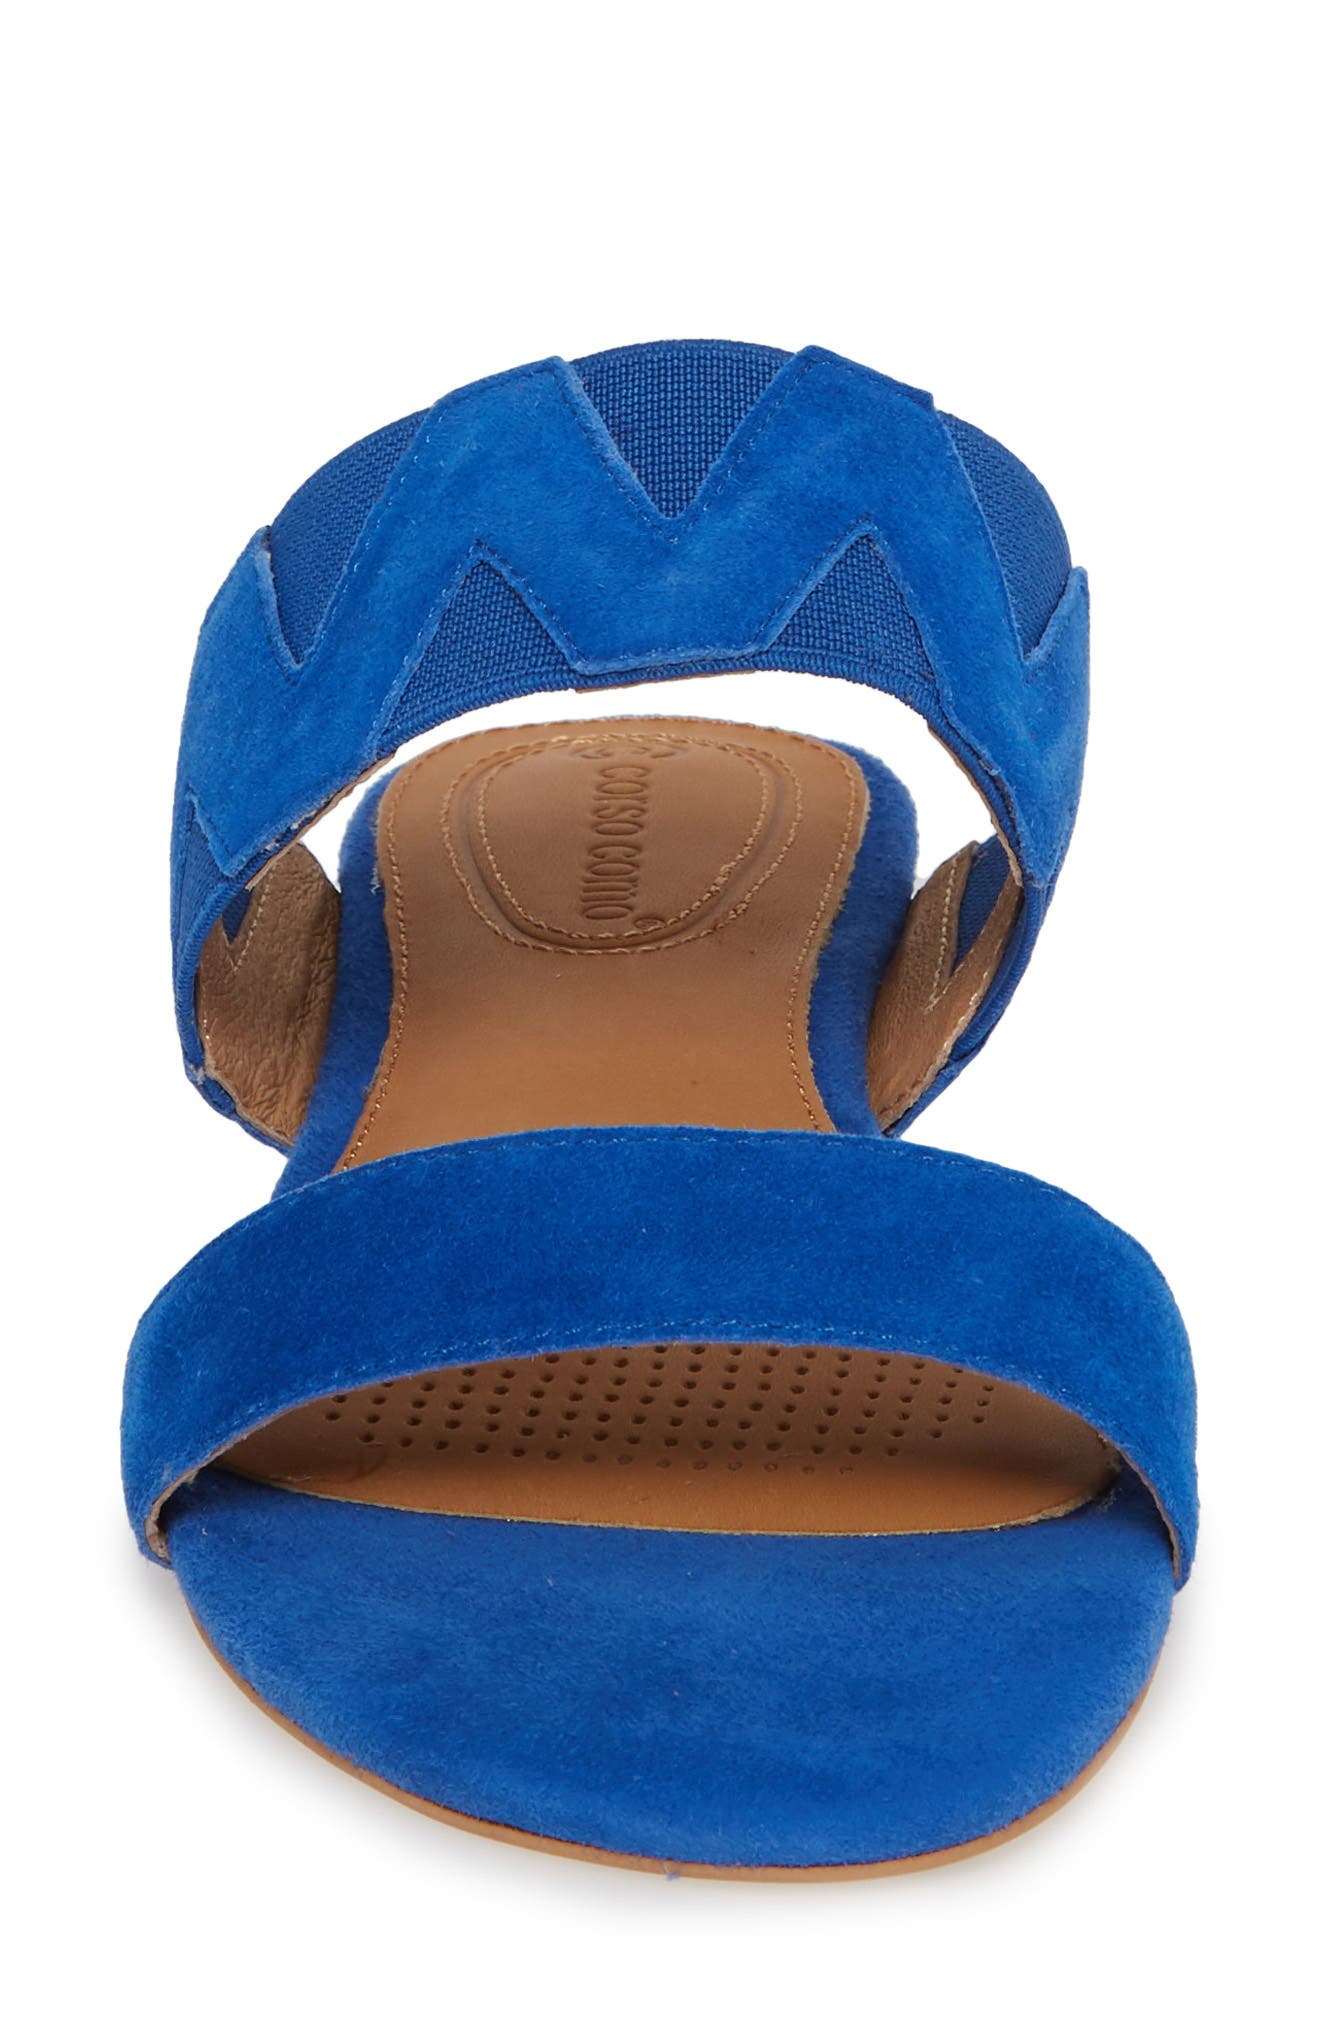 Vickee Double Band Sandal,                             Alternate thumbnail 4, color,                             Royal Blue Leather